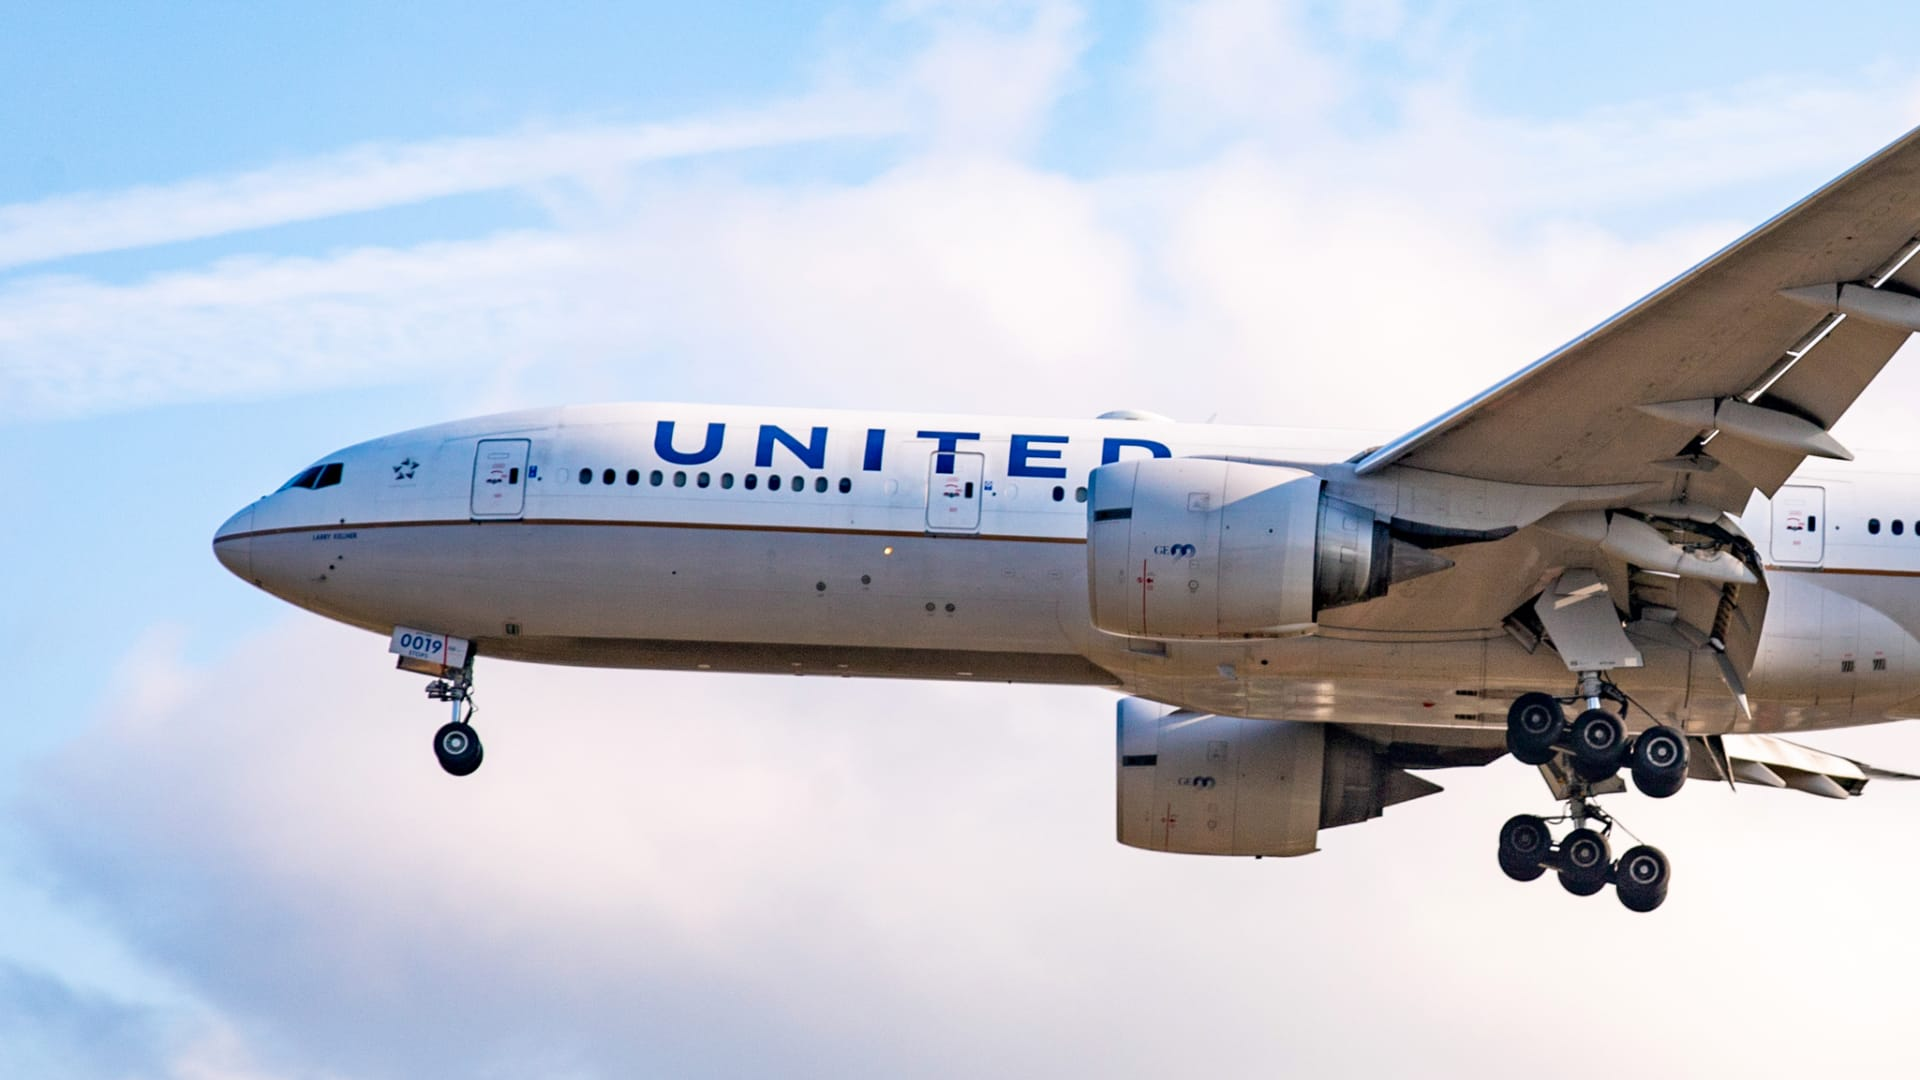 United Airlines Just Made a Surprising Move. Here's the Key Takeaway